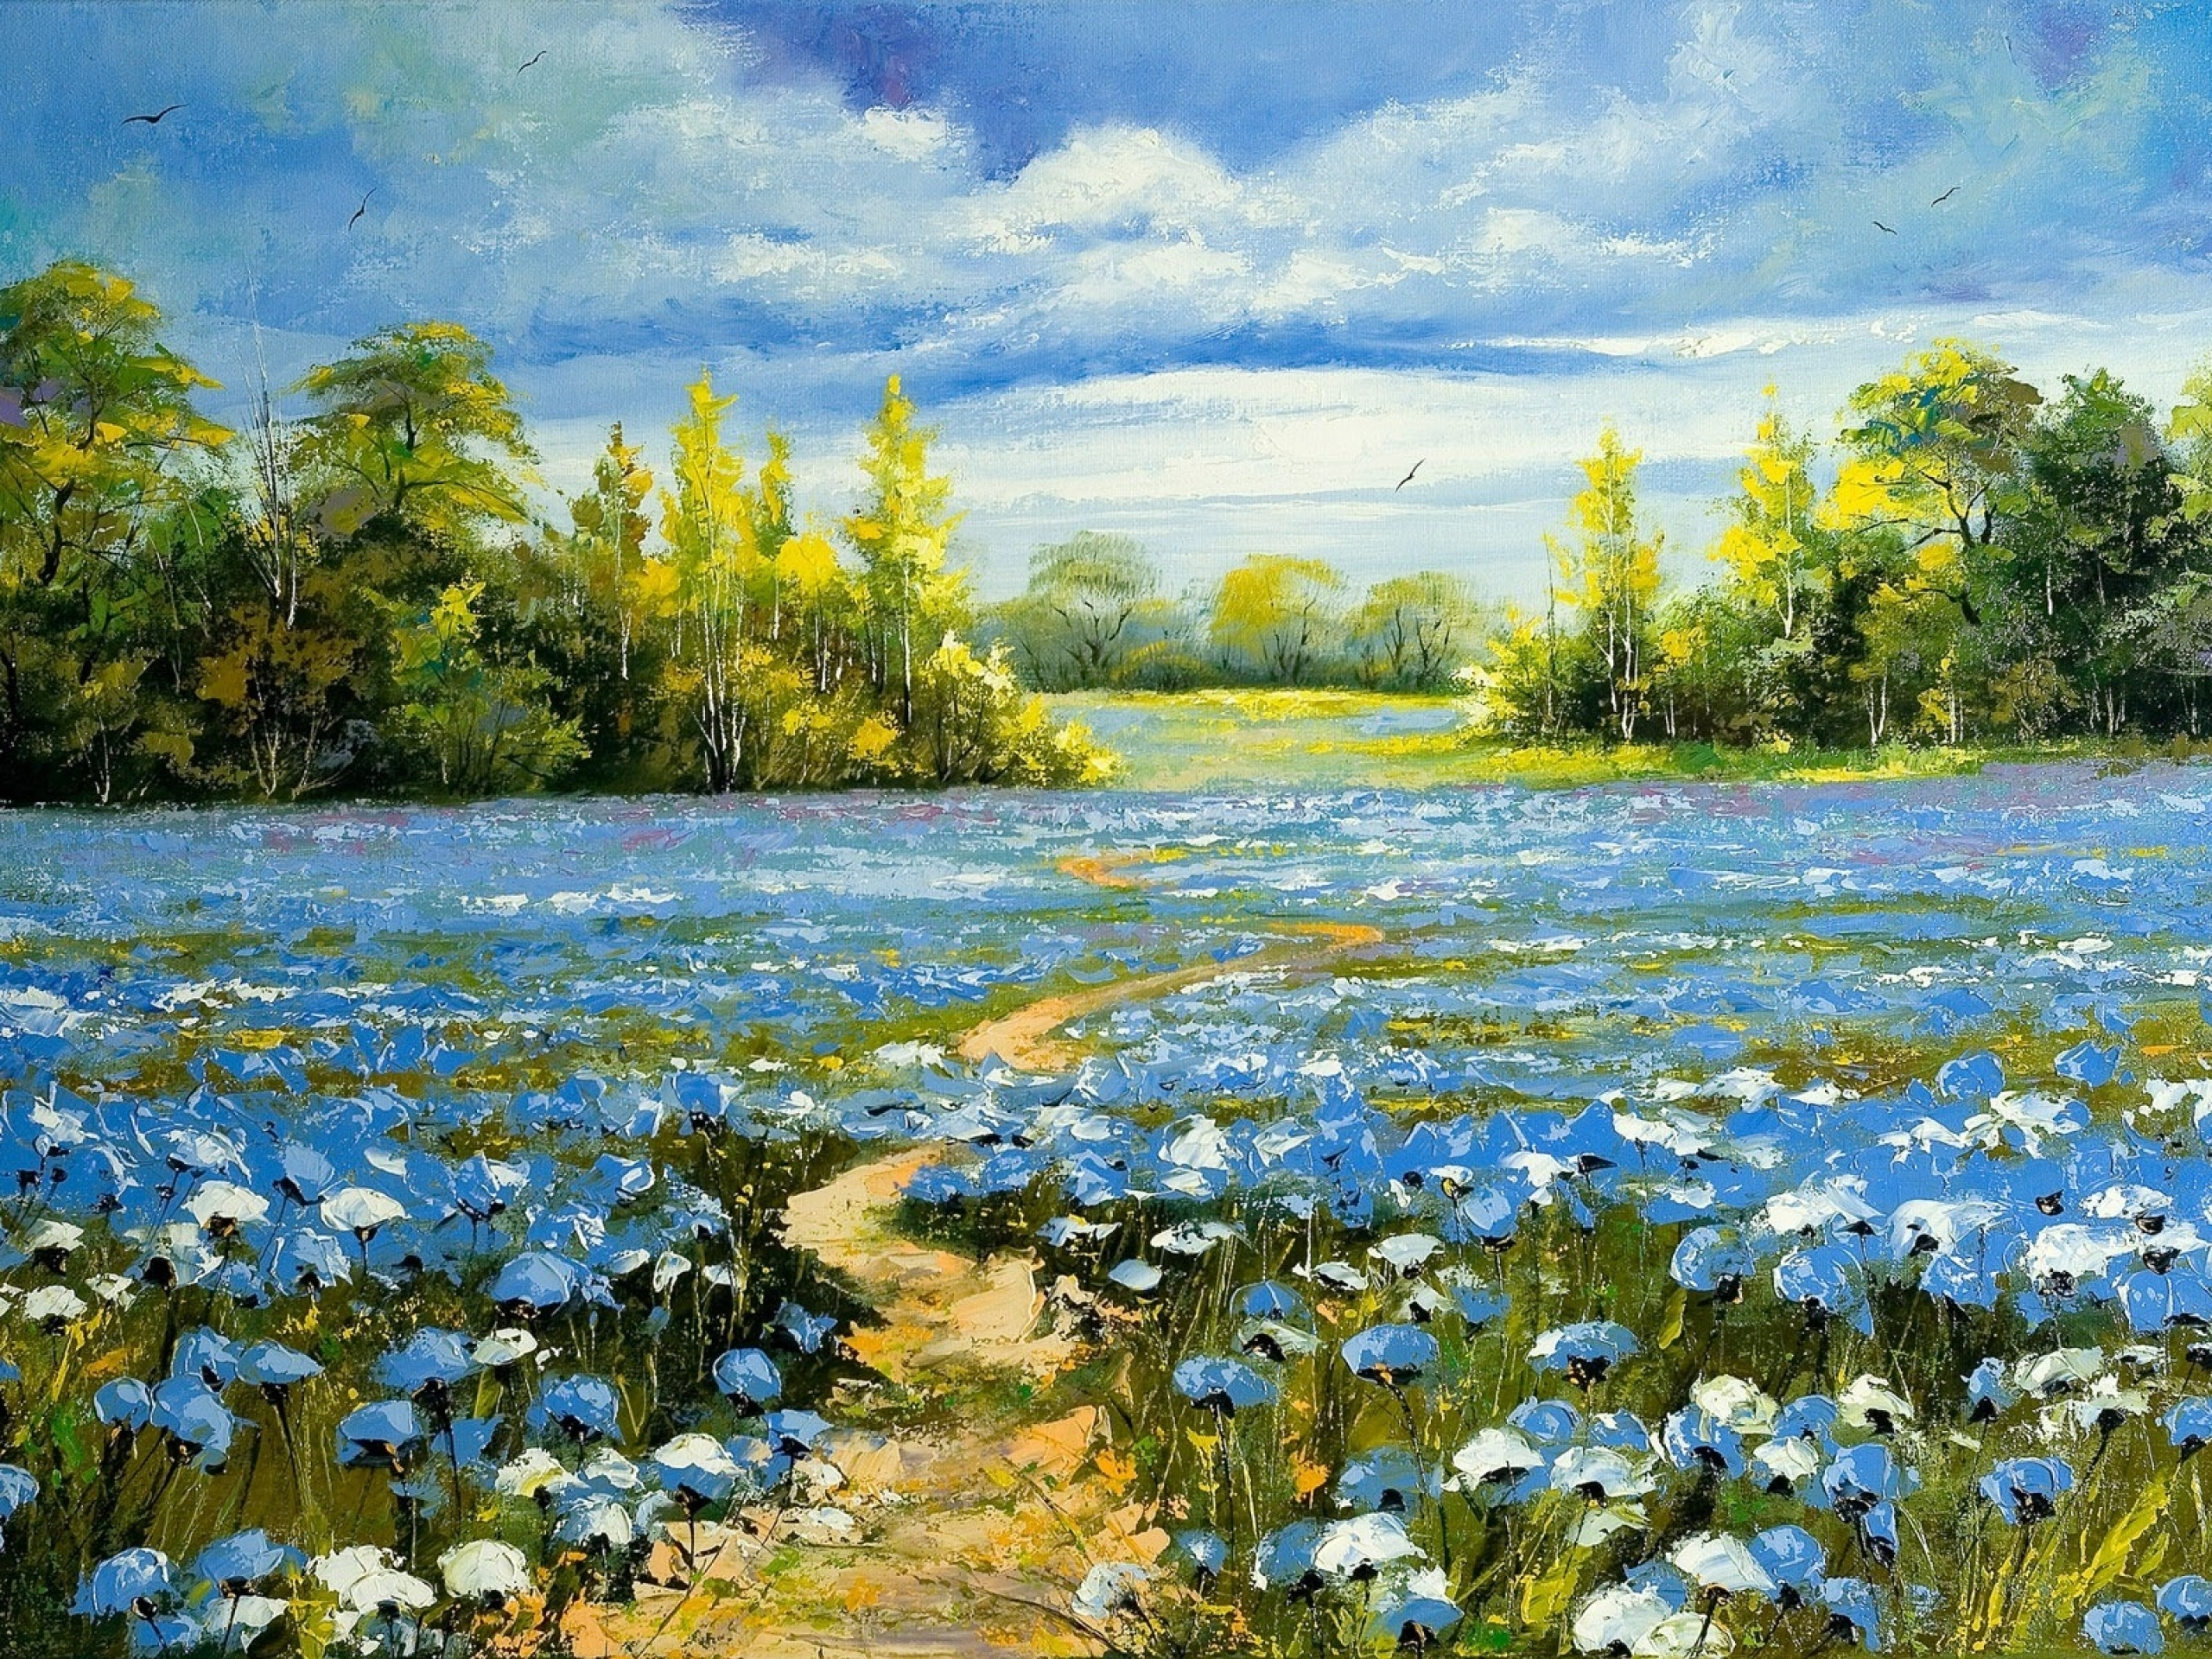 Image Nice Blue Flower Field Paint Wallpapers And Stock Photos